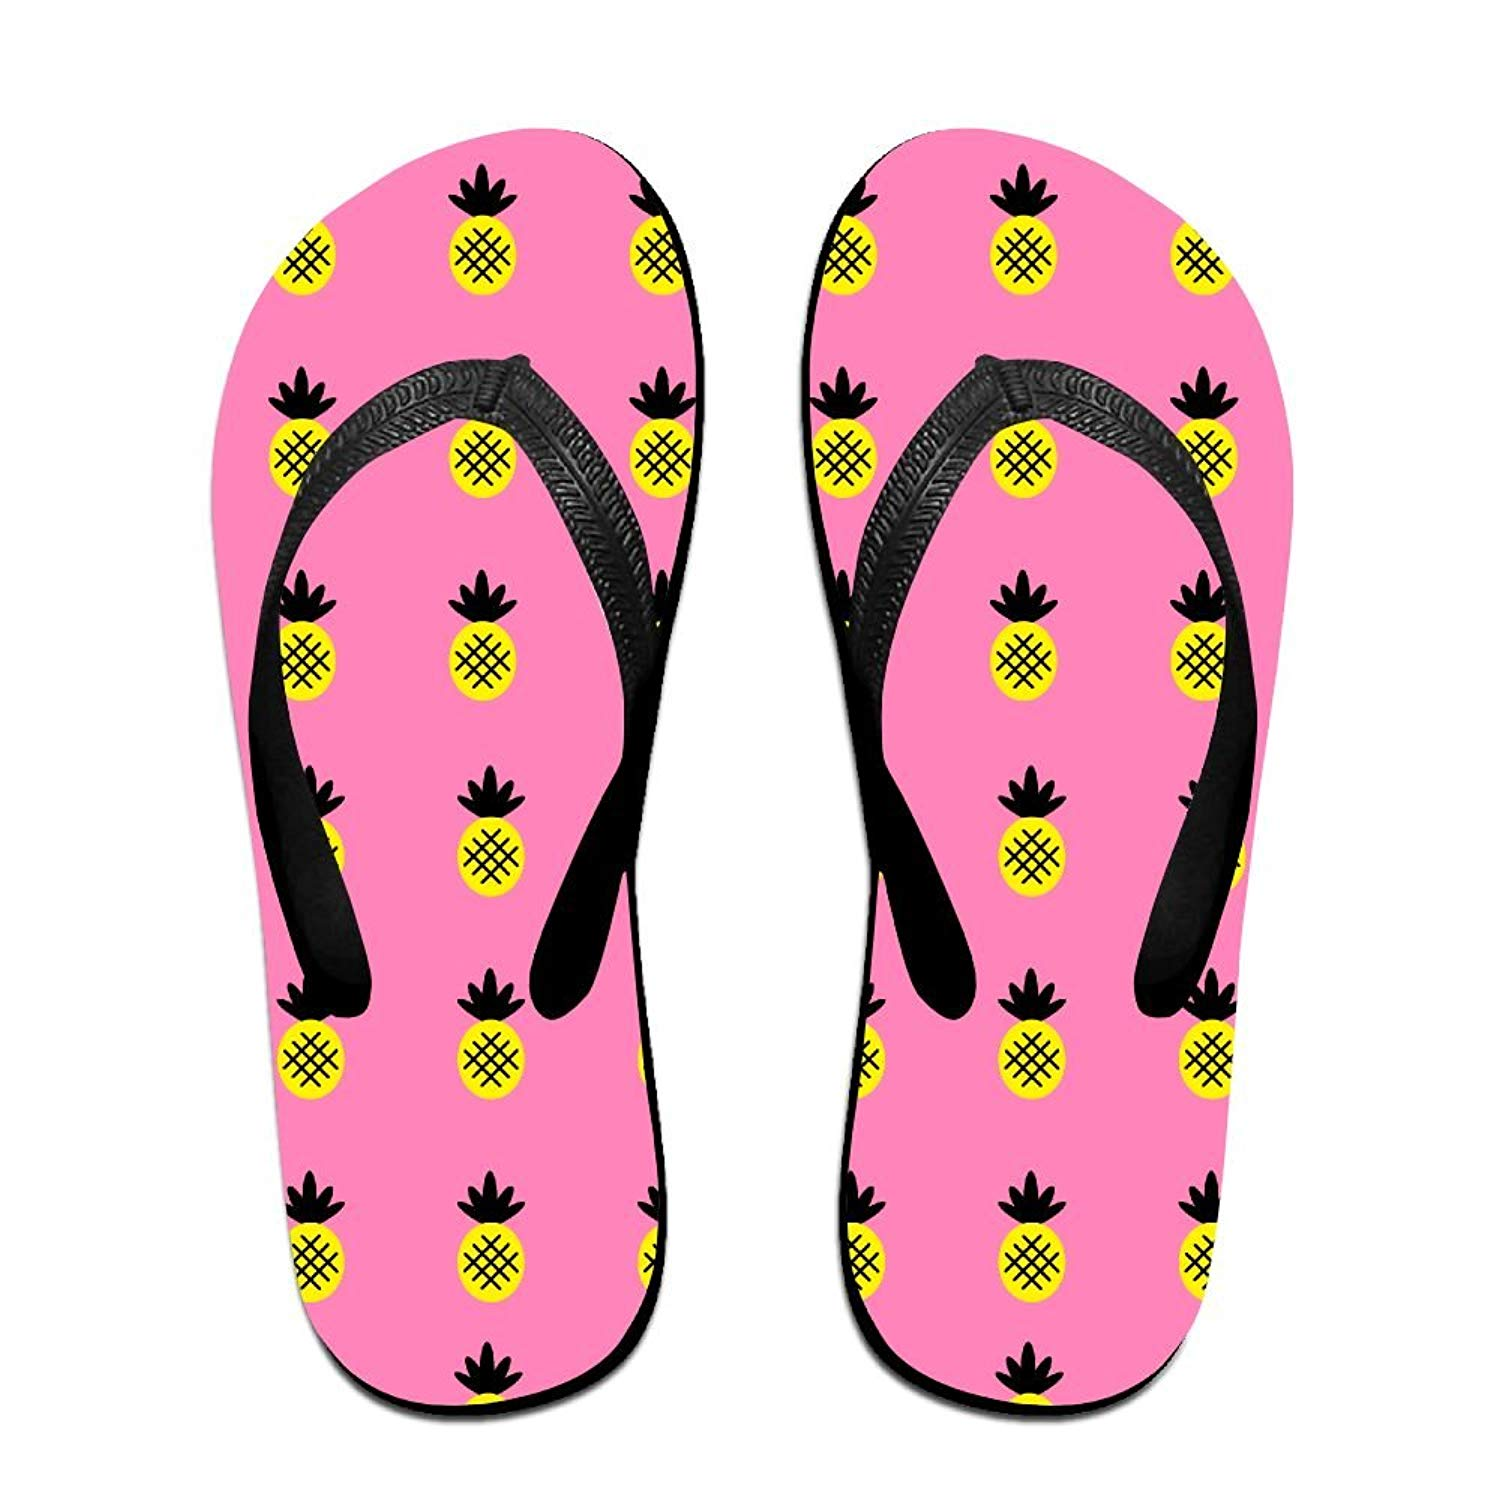 ed8db05f5396 Get Quotations · Pink Pineapple Paradise Fun Flip Flops Thong Sandals